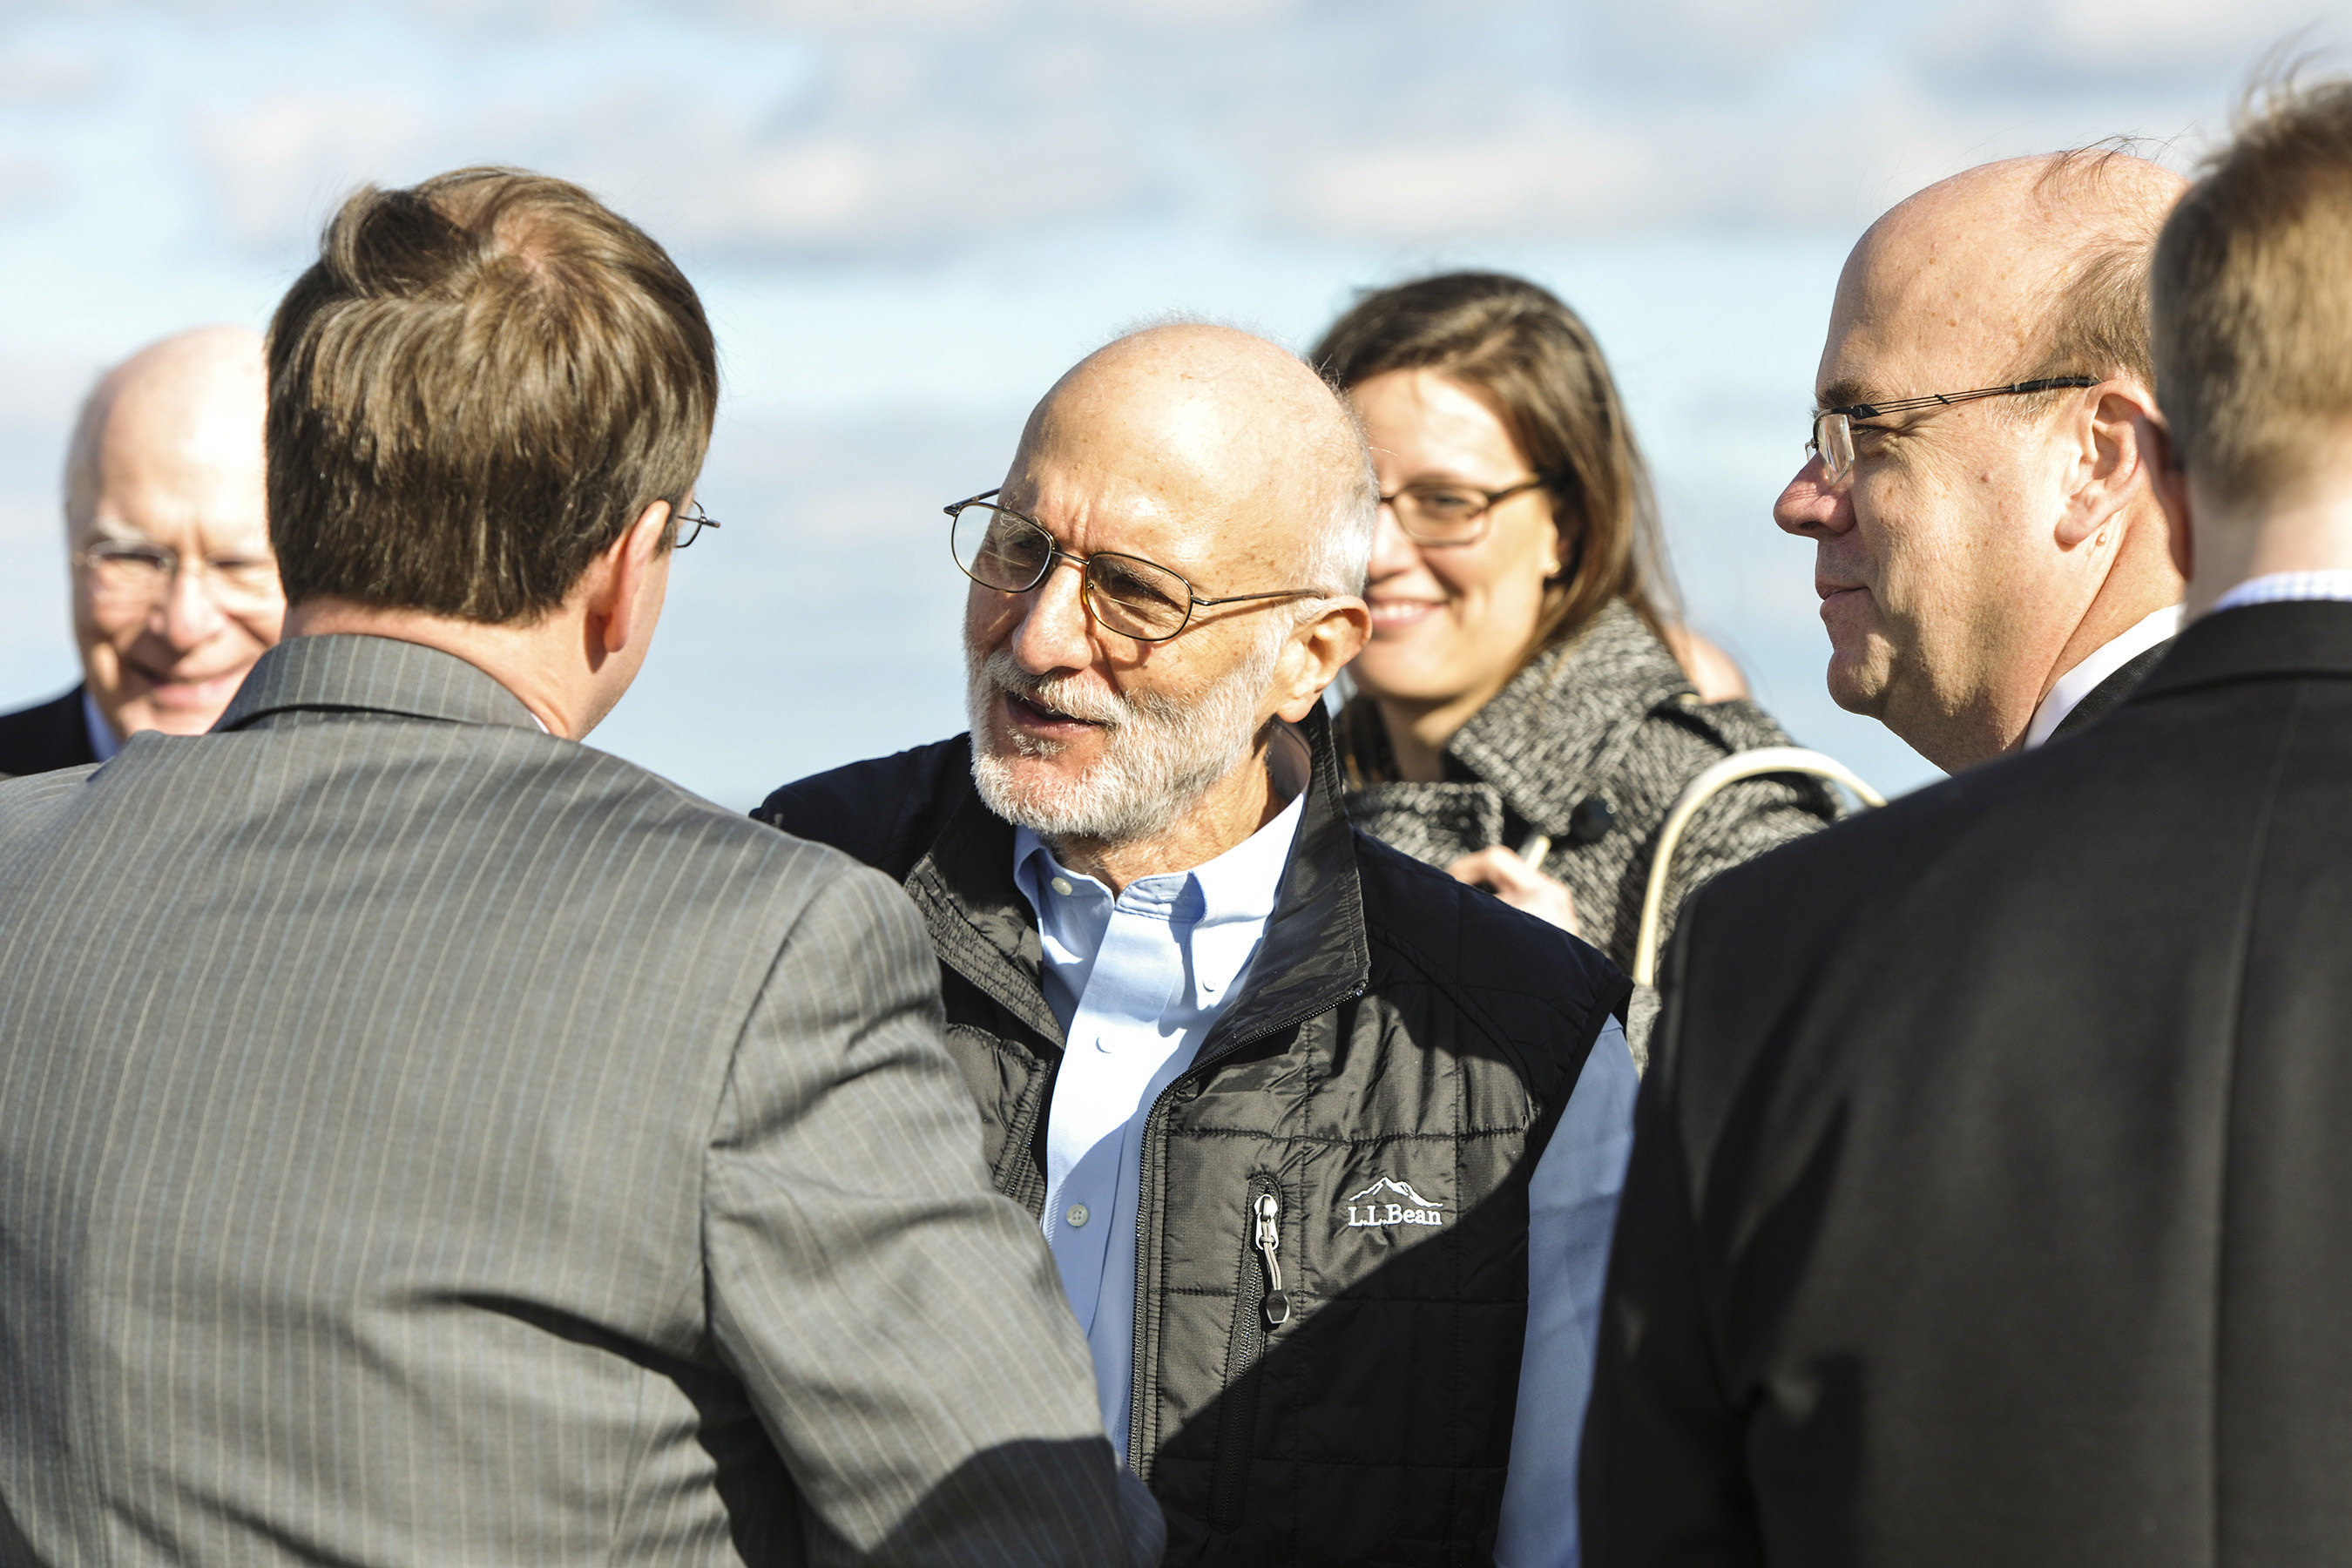 Alan Gross speaks to an entourage of family and friends who were awaiting his return from five years of captivity in Cuba to Joint Base Andrews, Maryland, Dec. 17, 2014